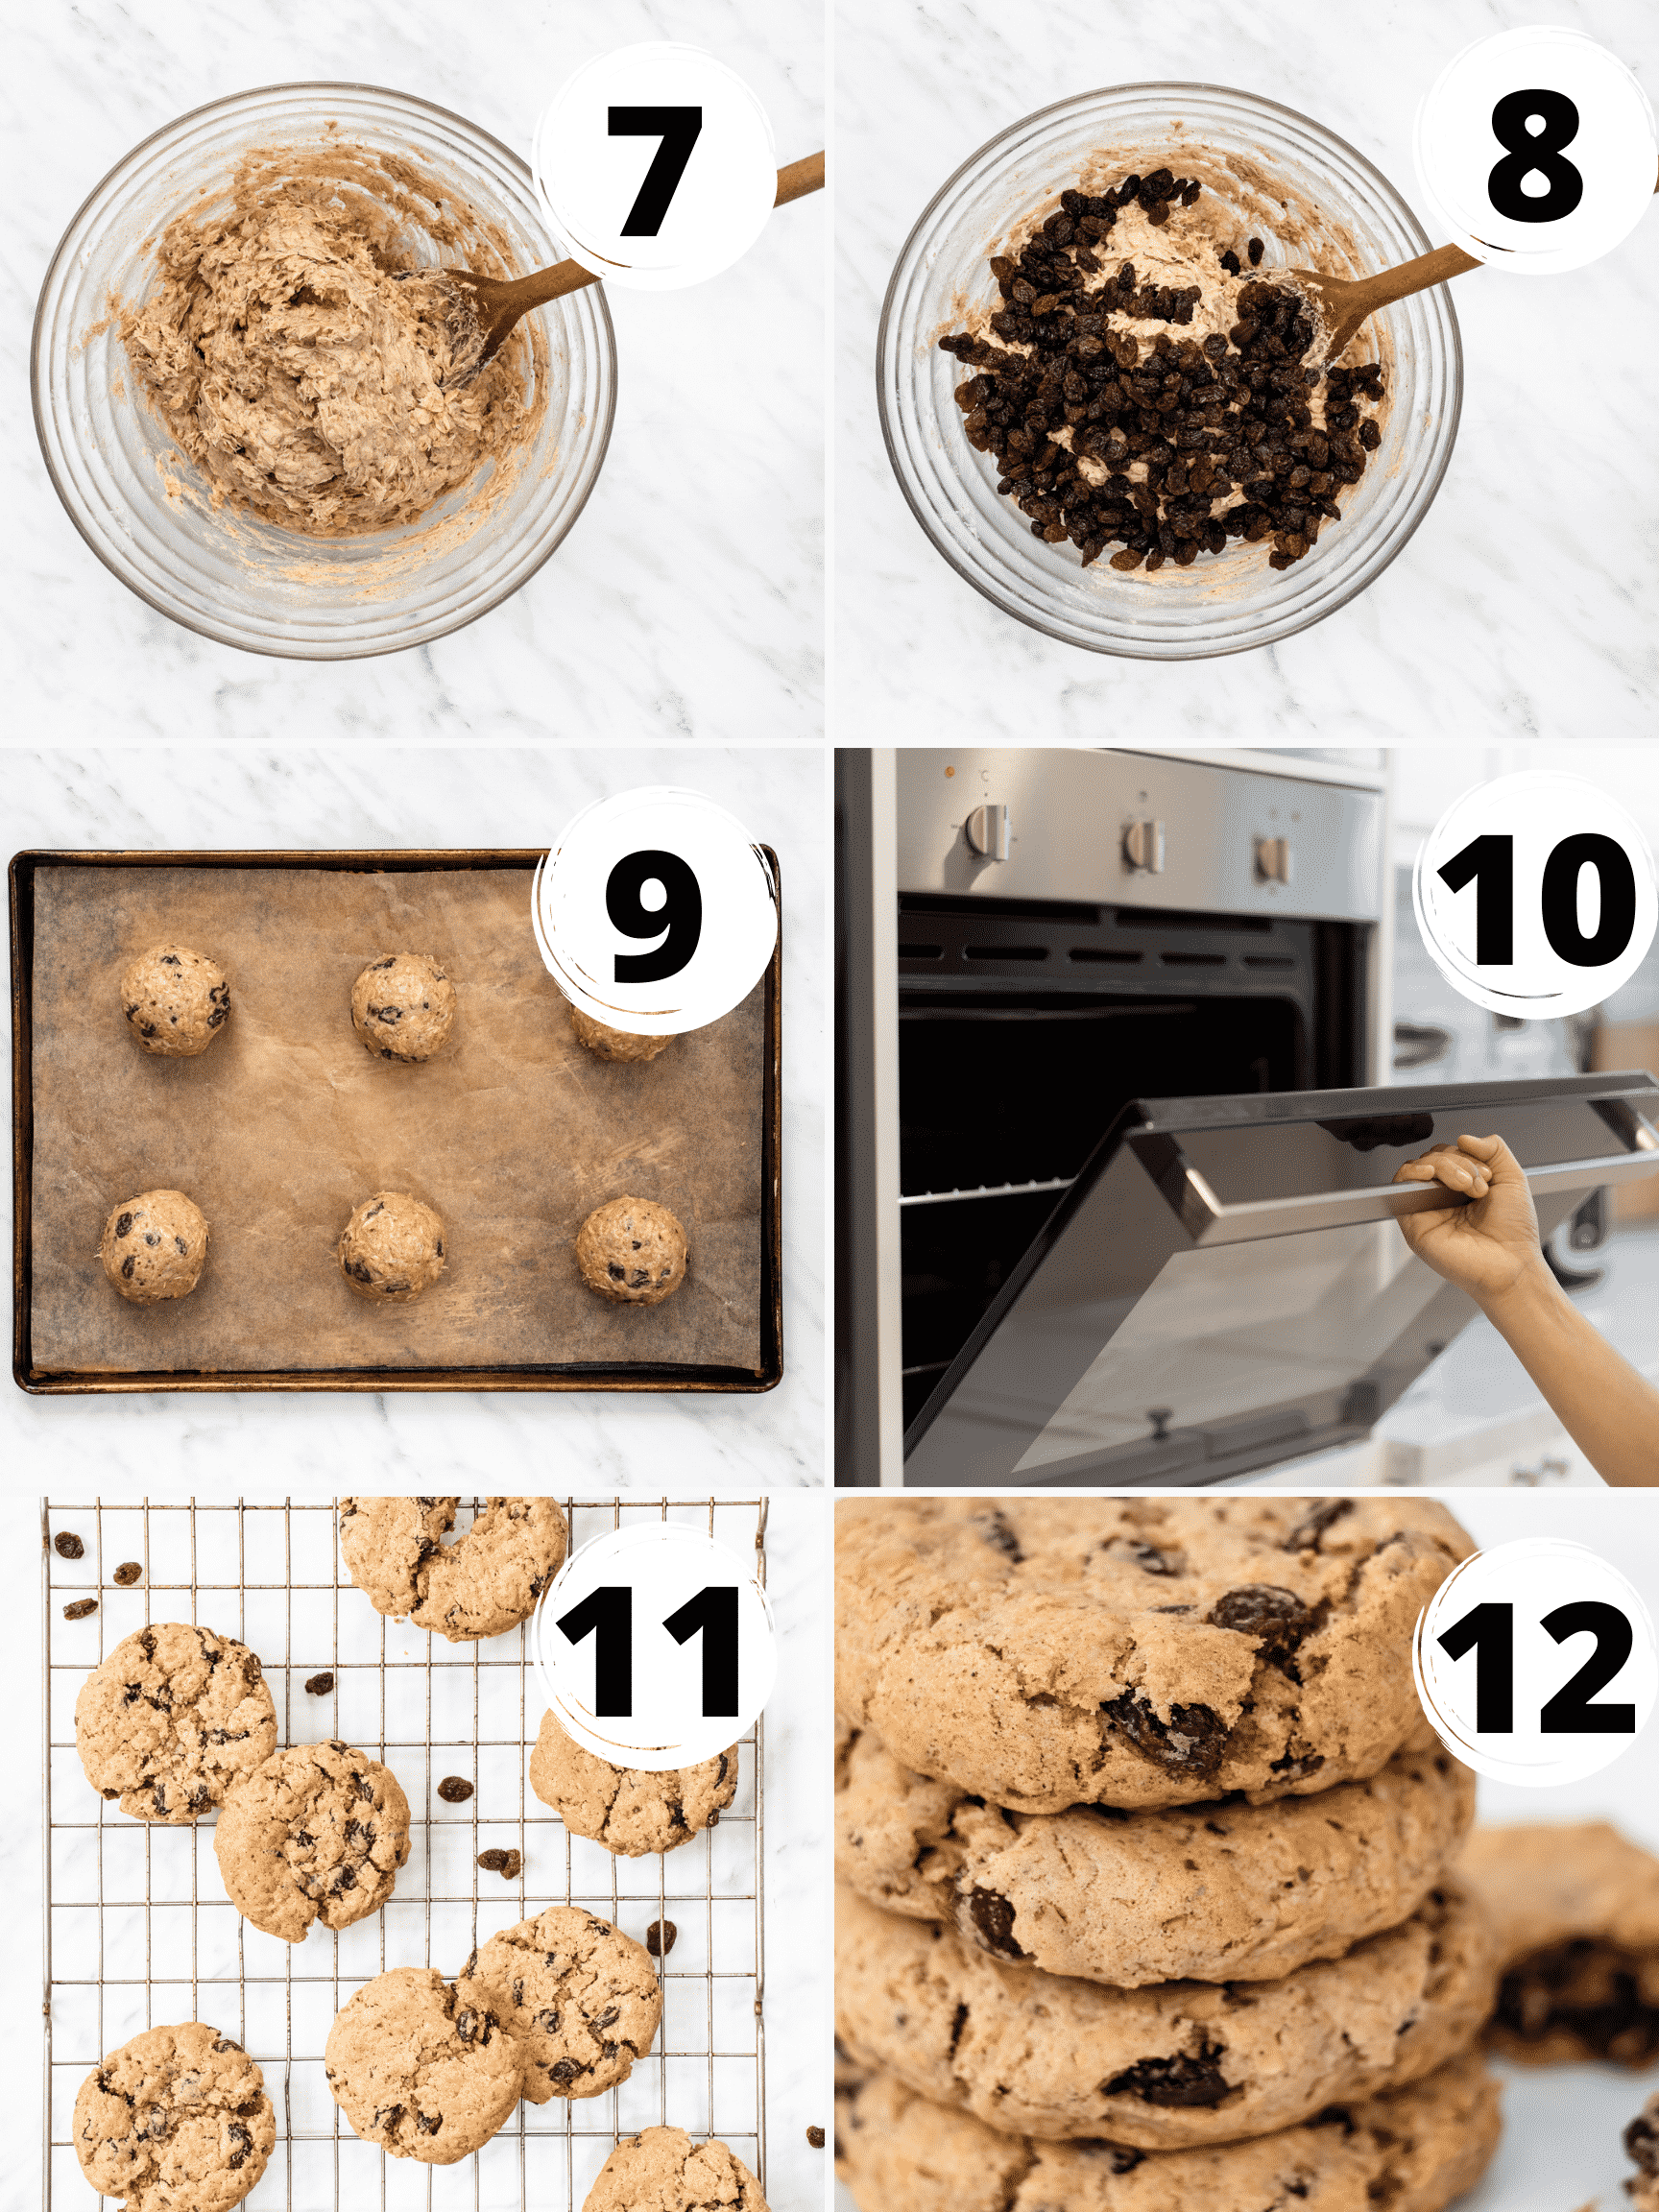 Collage of steps for how to make vegan oatmeal raisin cookies